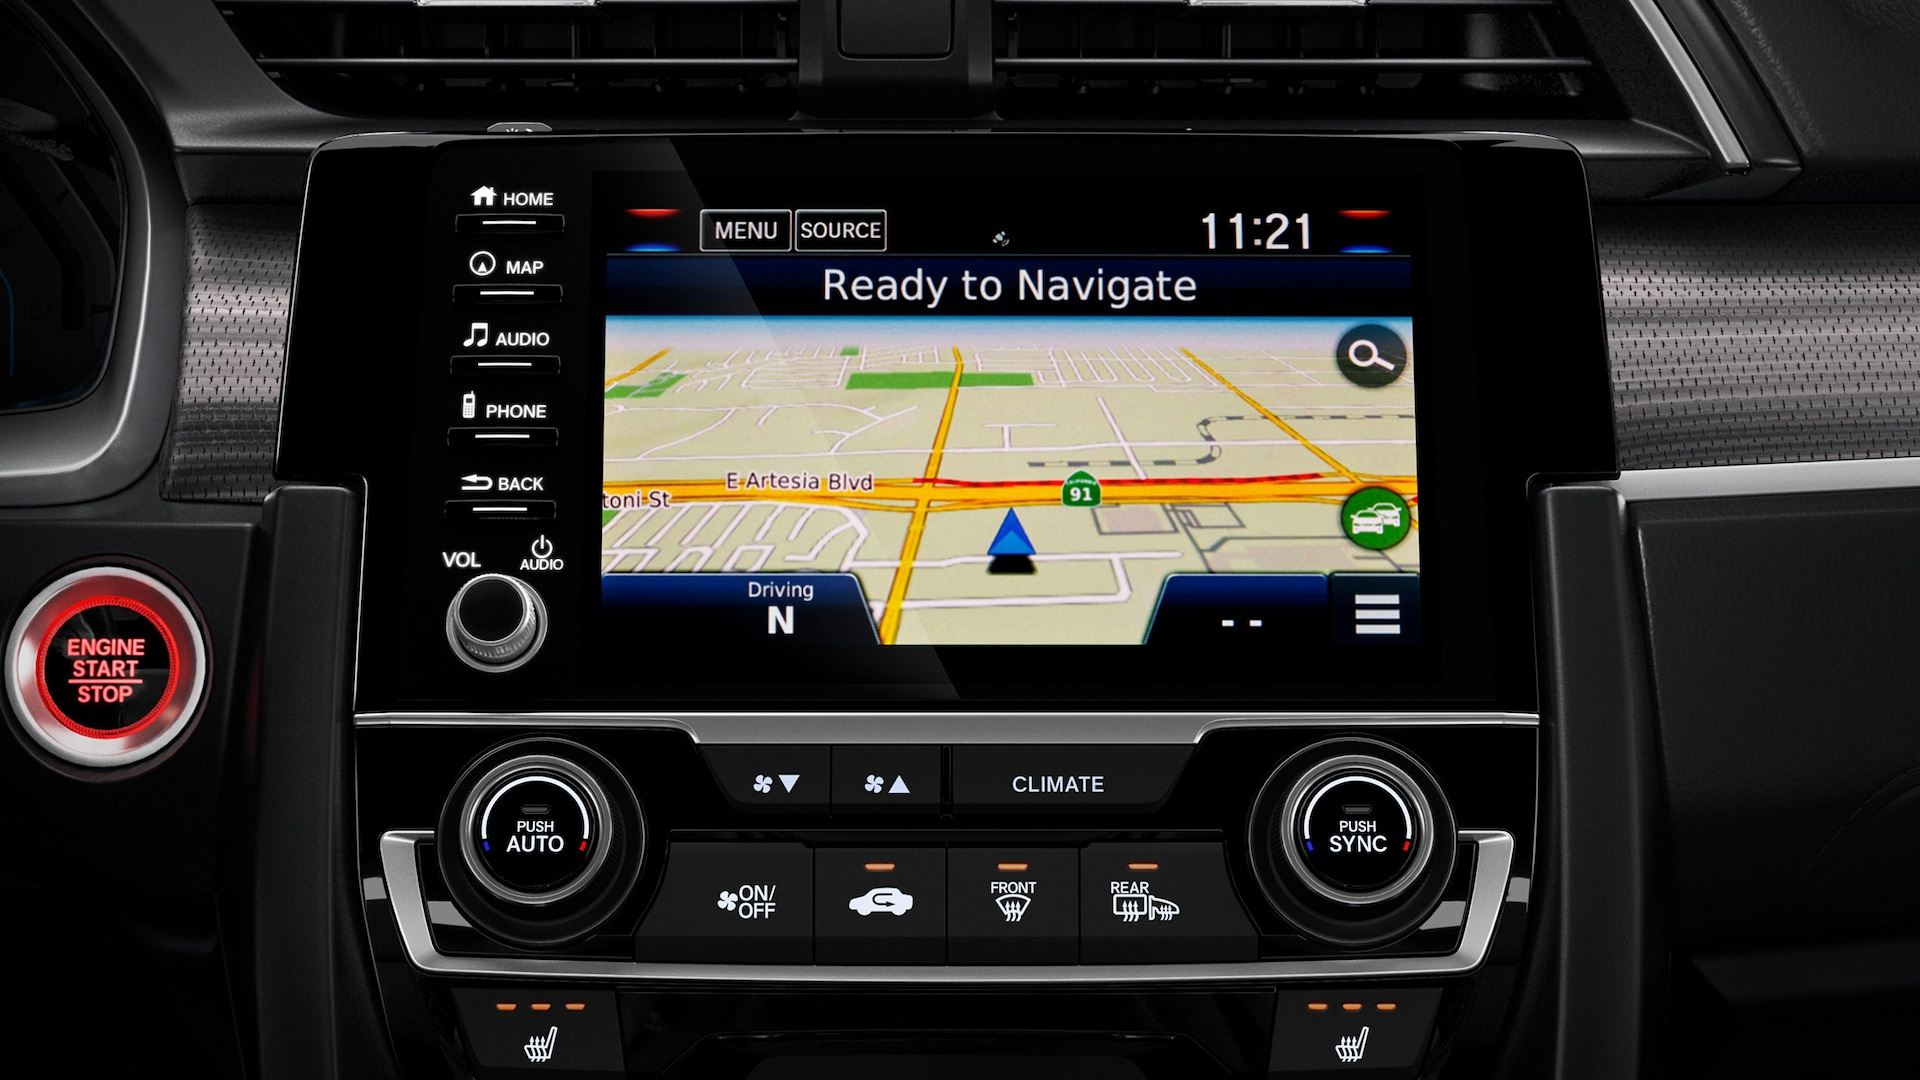 Honda Satellite-Linked Navigation System™ detail on Display Audio touch-screen in the 2021 Honda Civic Touring Sedan.